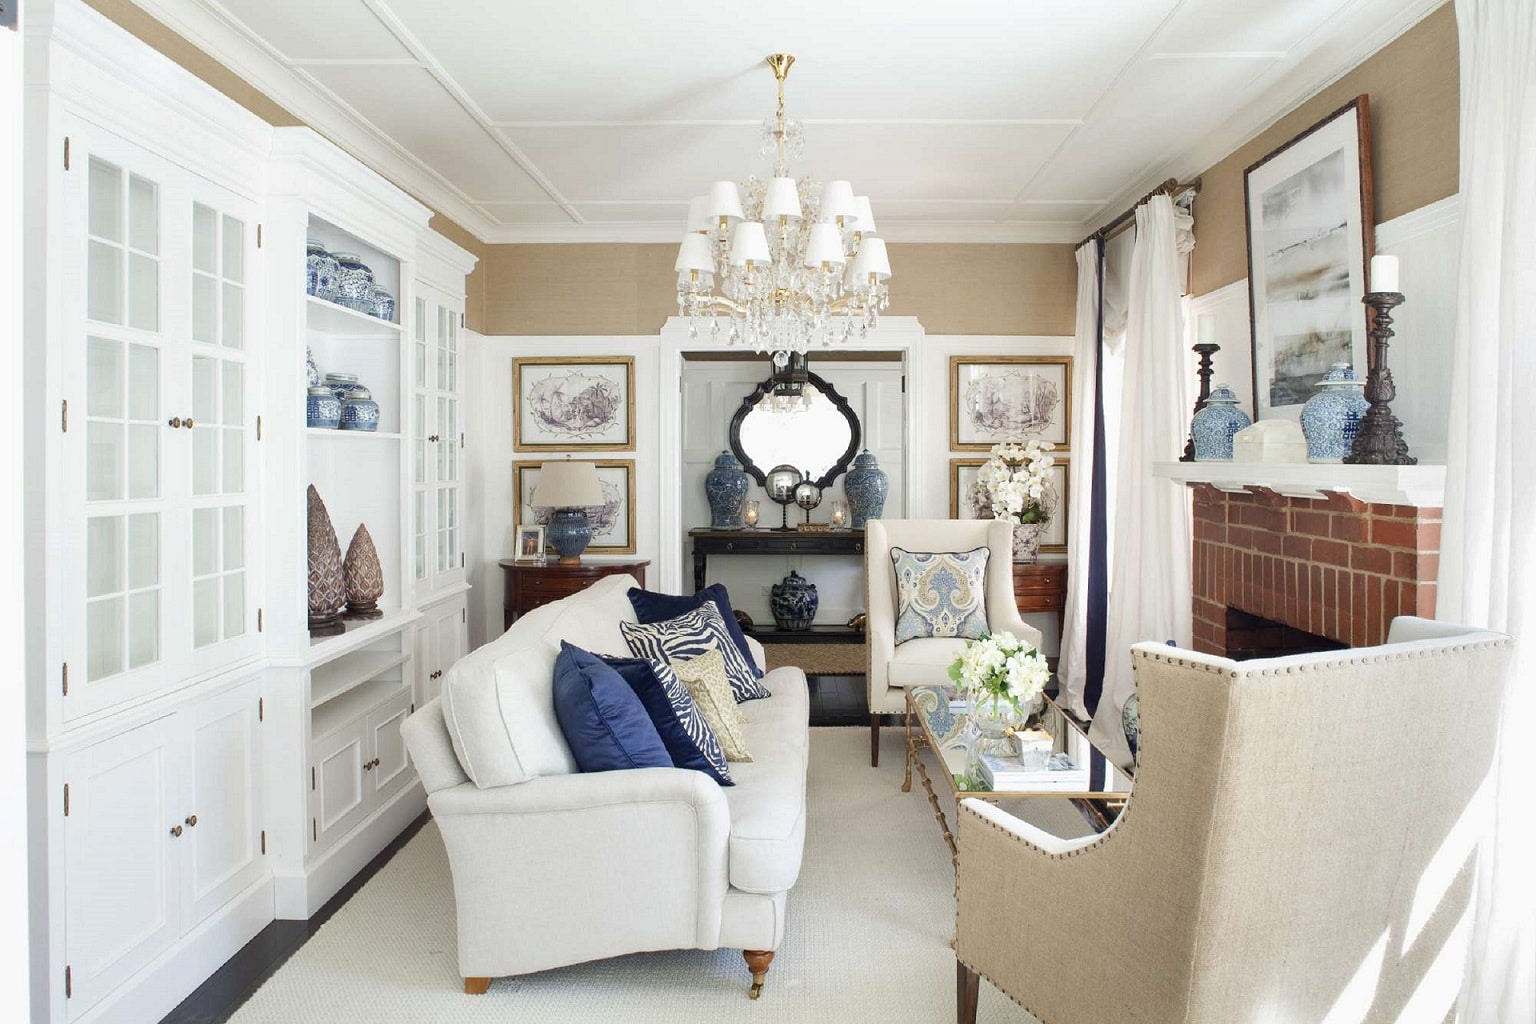 canberra styling a living room rug sofa table traditional chandelier classic style